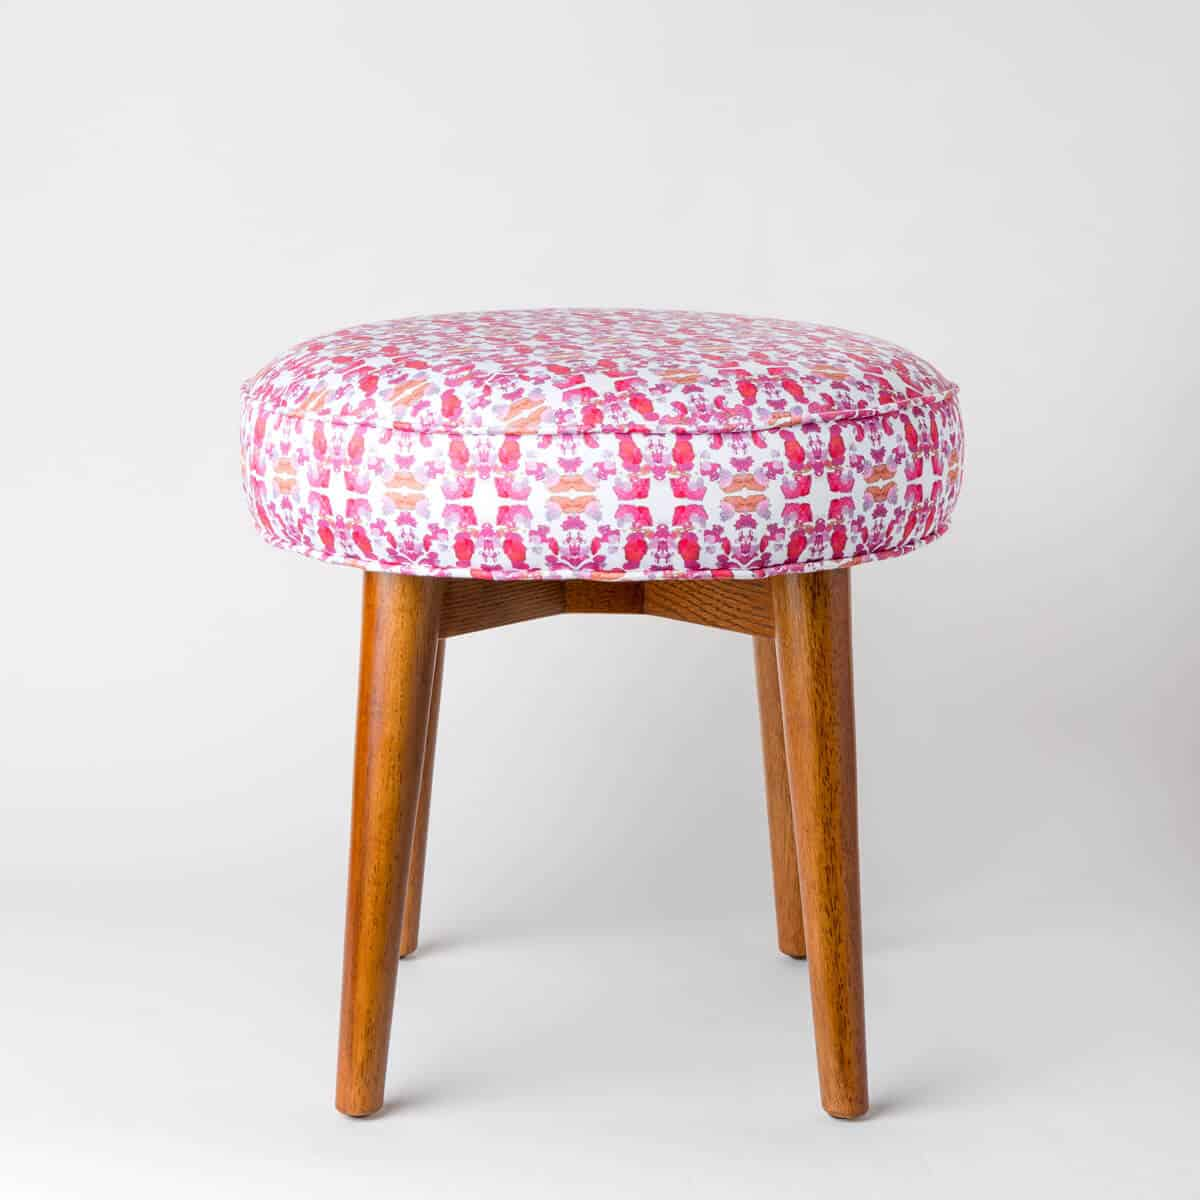 Luxury organic abstract tessellating floral pink upholstered stool